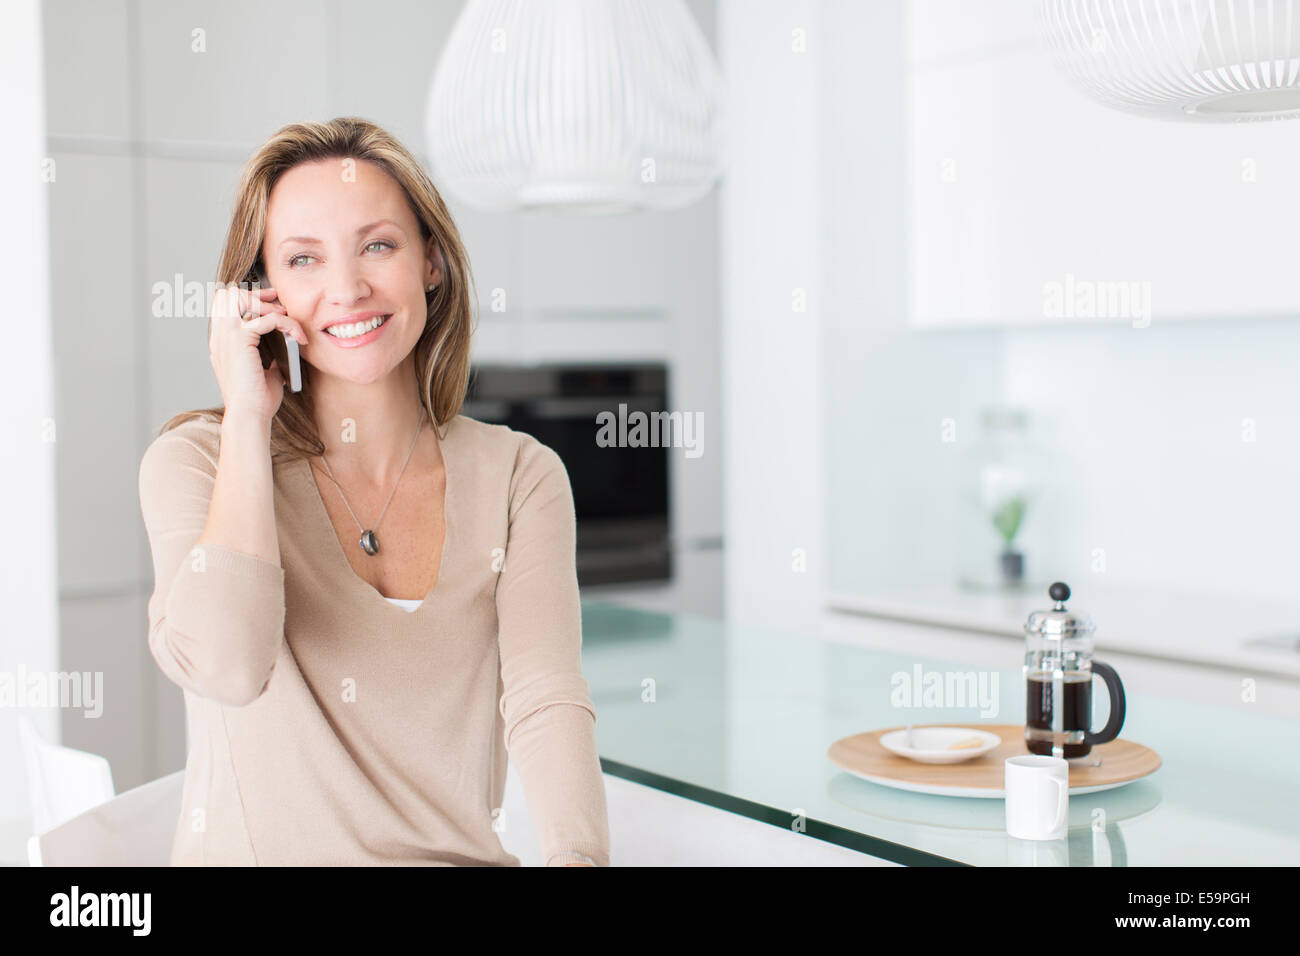 Woman talking on cell phone at breakfast table - Stock Image